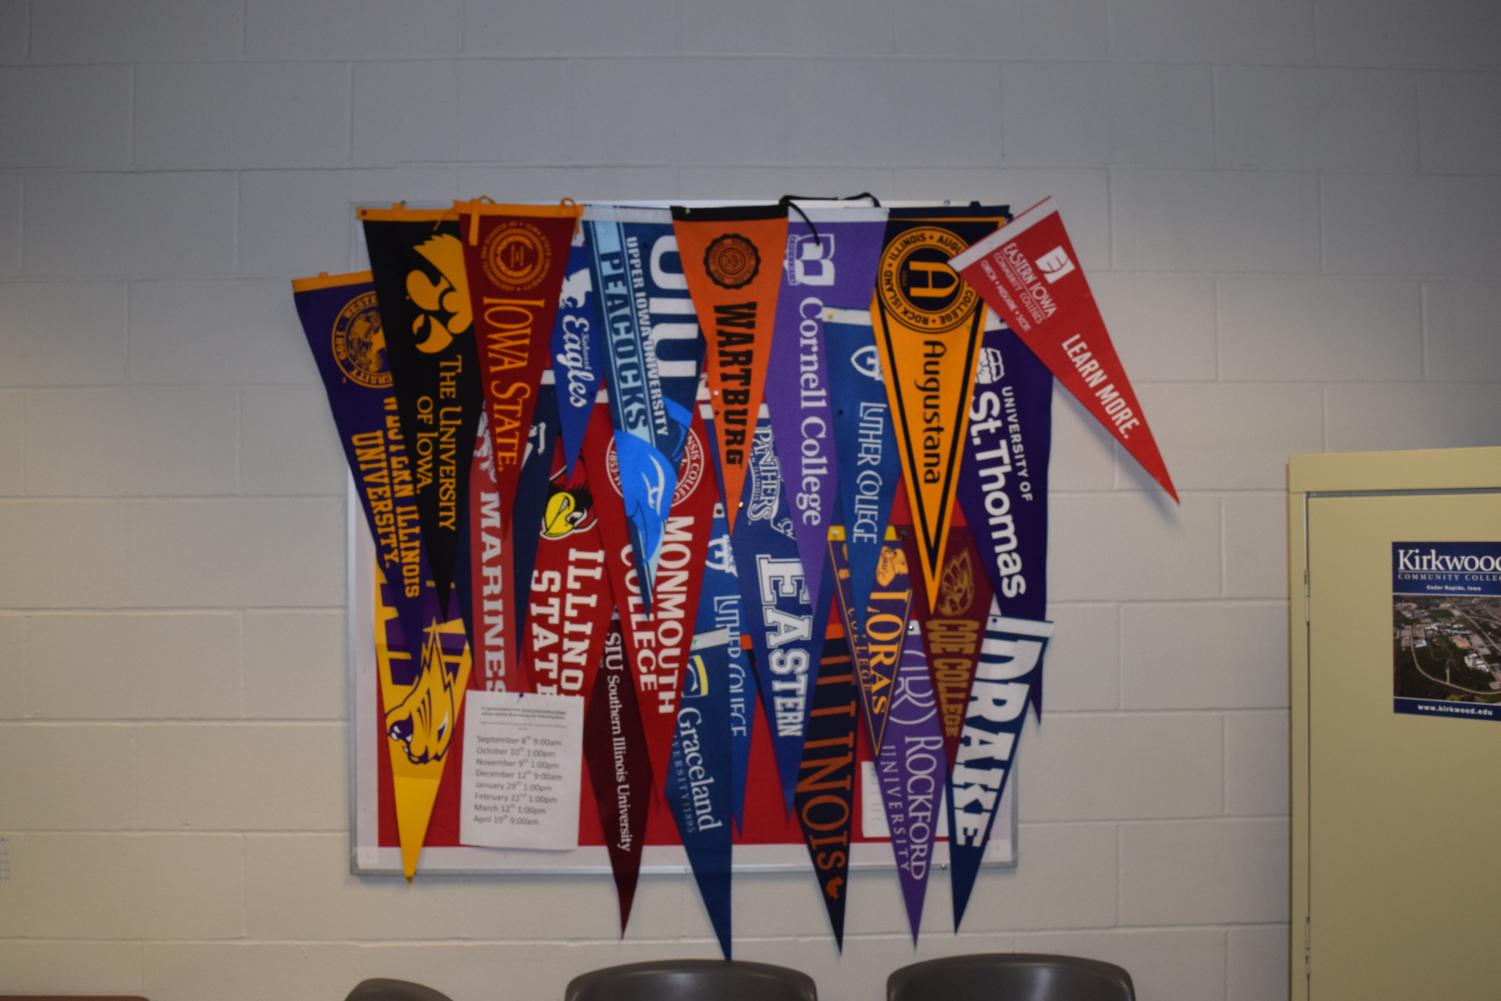 The guidance office represents the many colleges and universities that West students attend with college pendants.